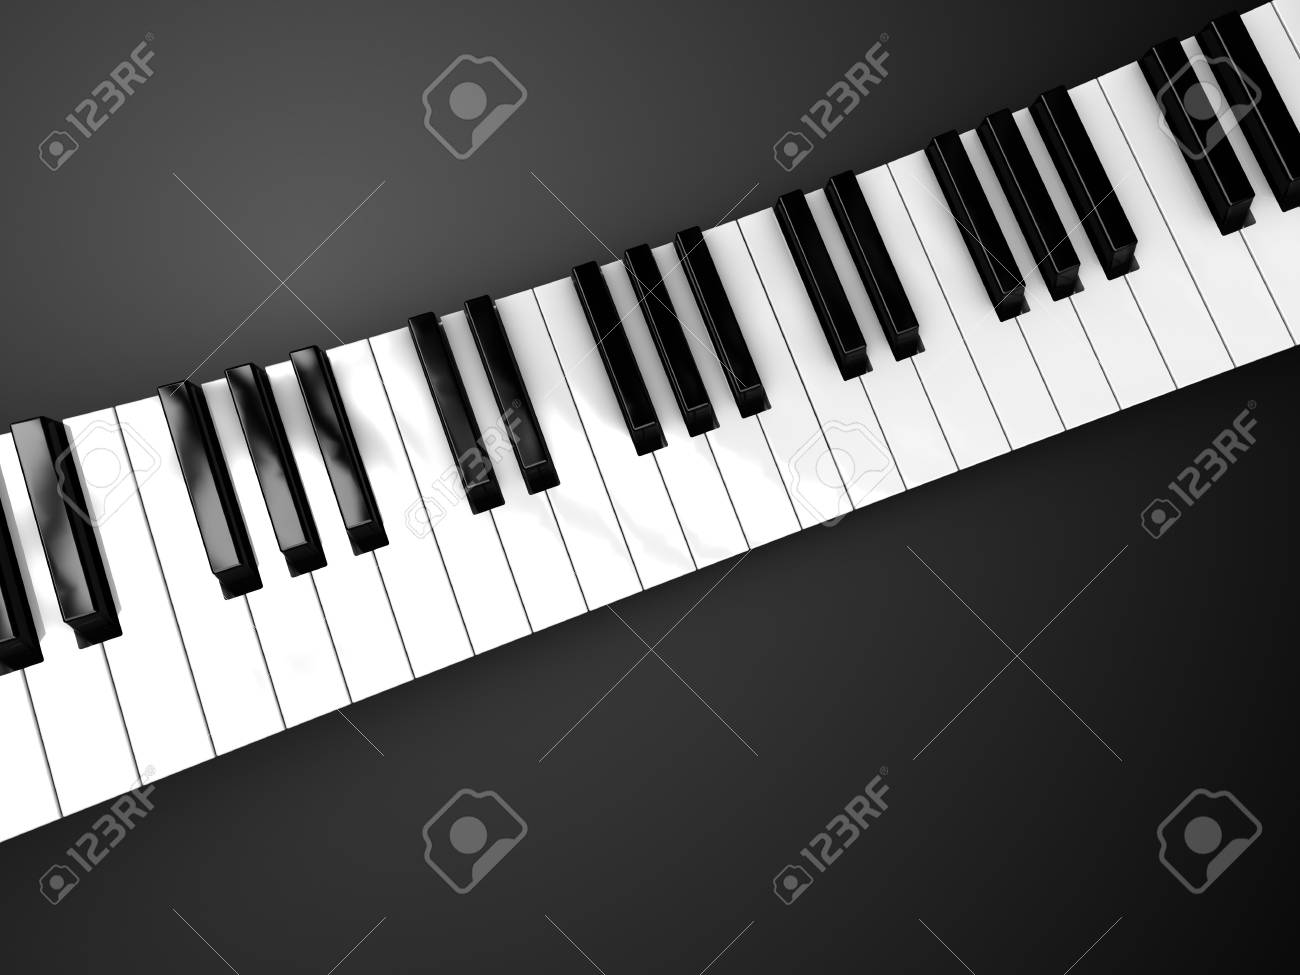 3d illustration of piano keyboard background Stock Photo - 6895075